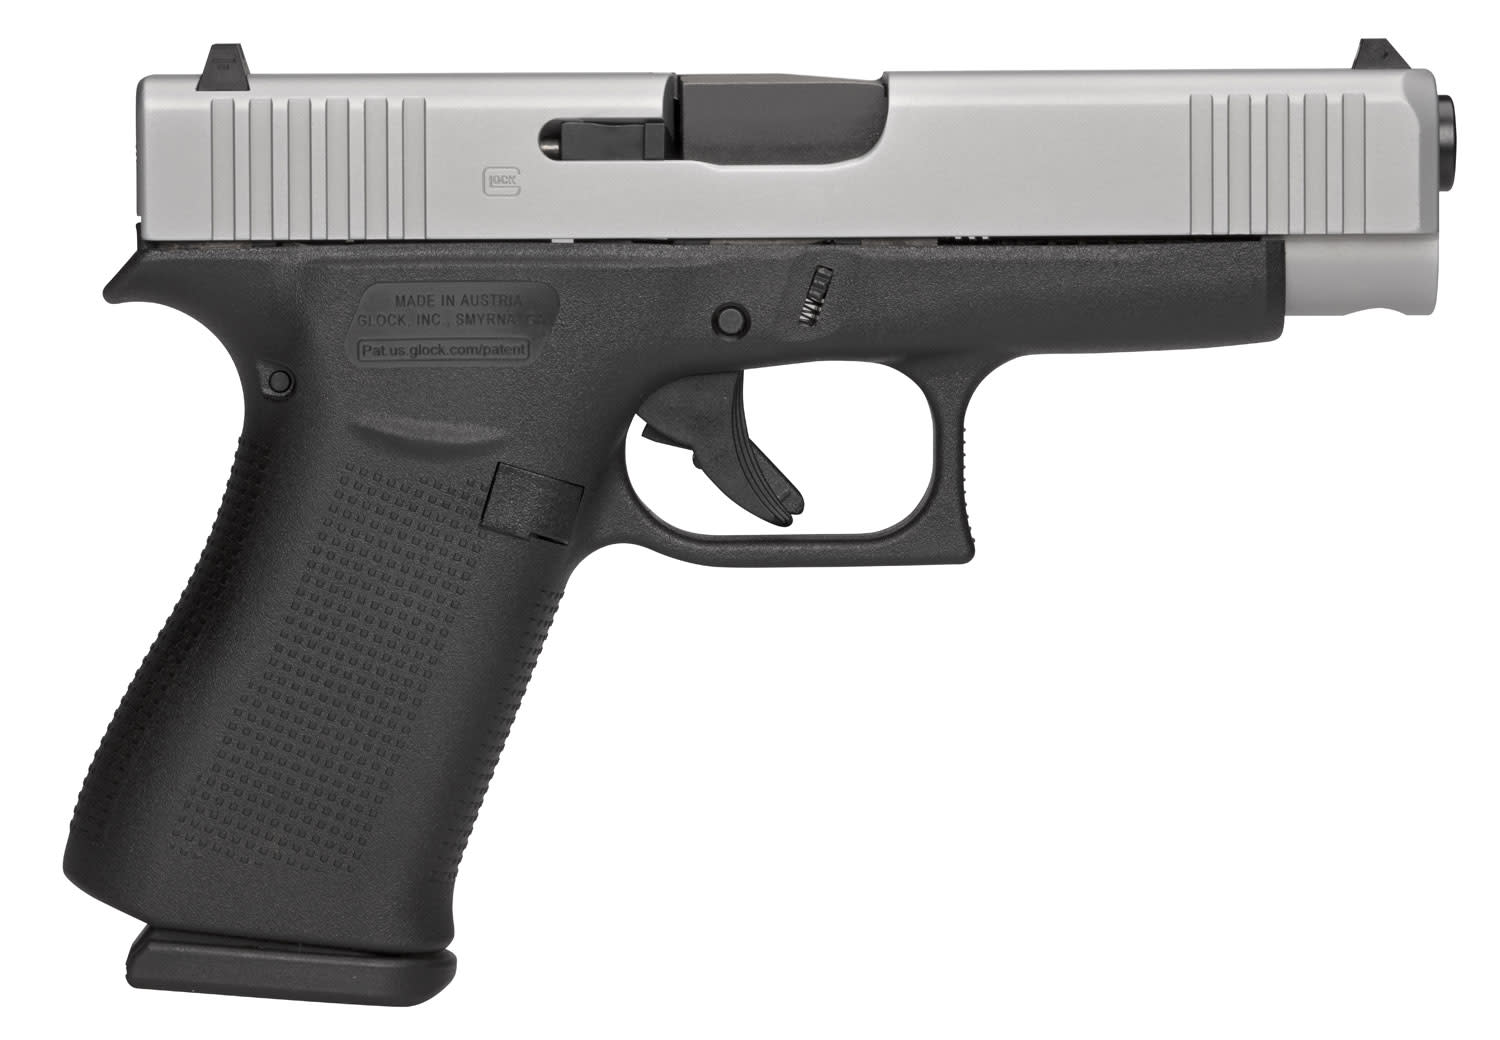 GLOCK® G48 Pistol - 9mm 10+1 - Night Sights - Front Serrations - Black with Silver PVD Slide